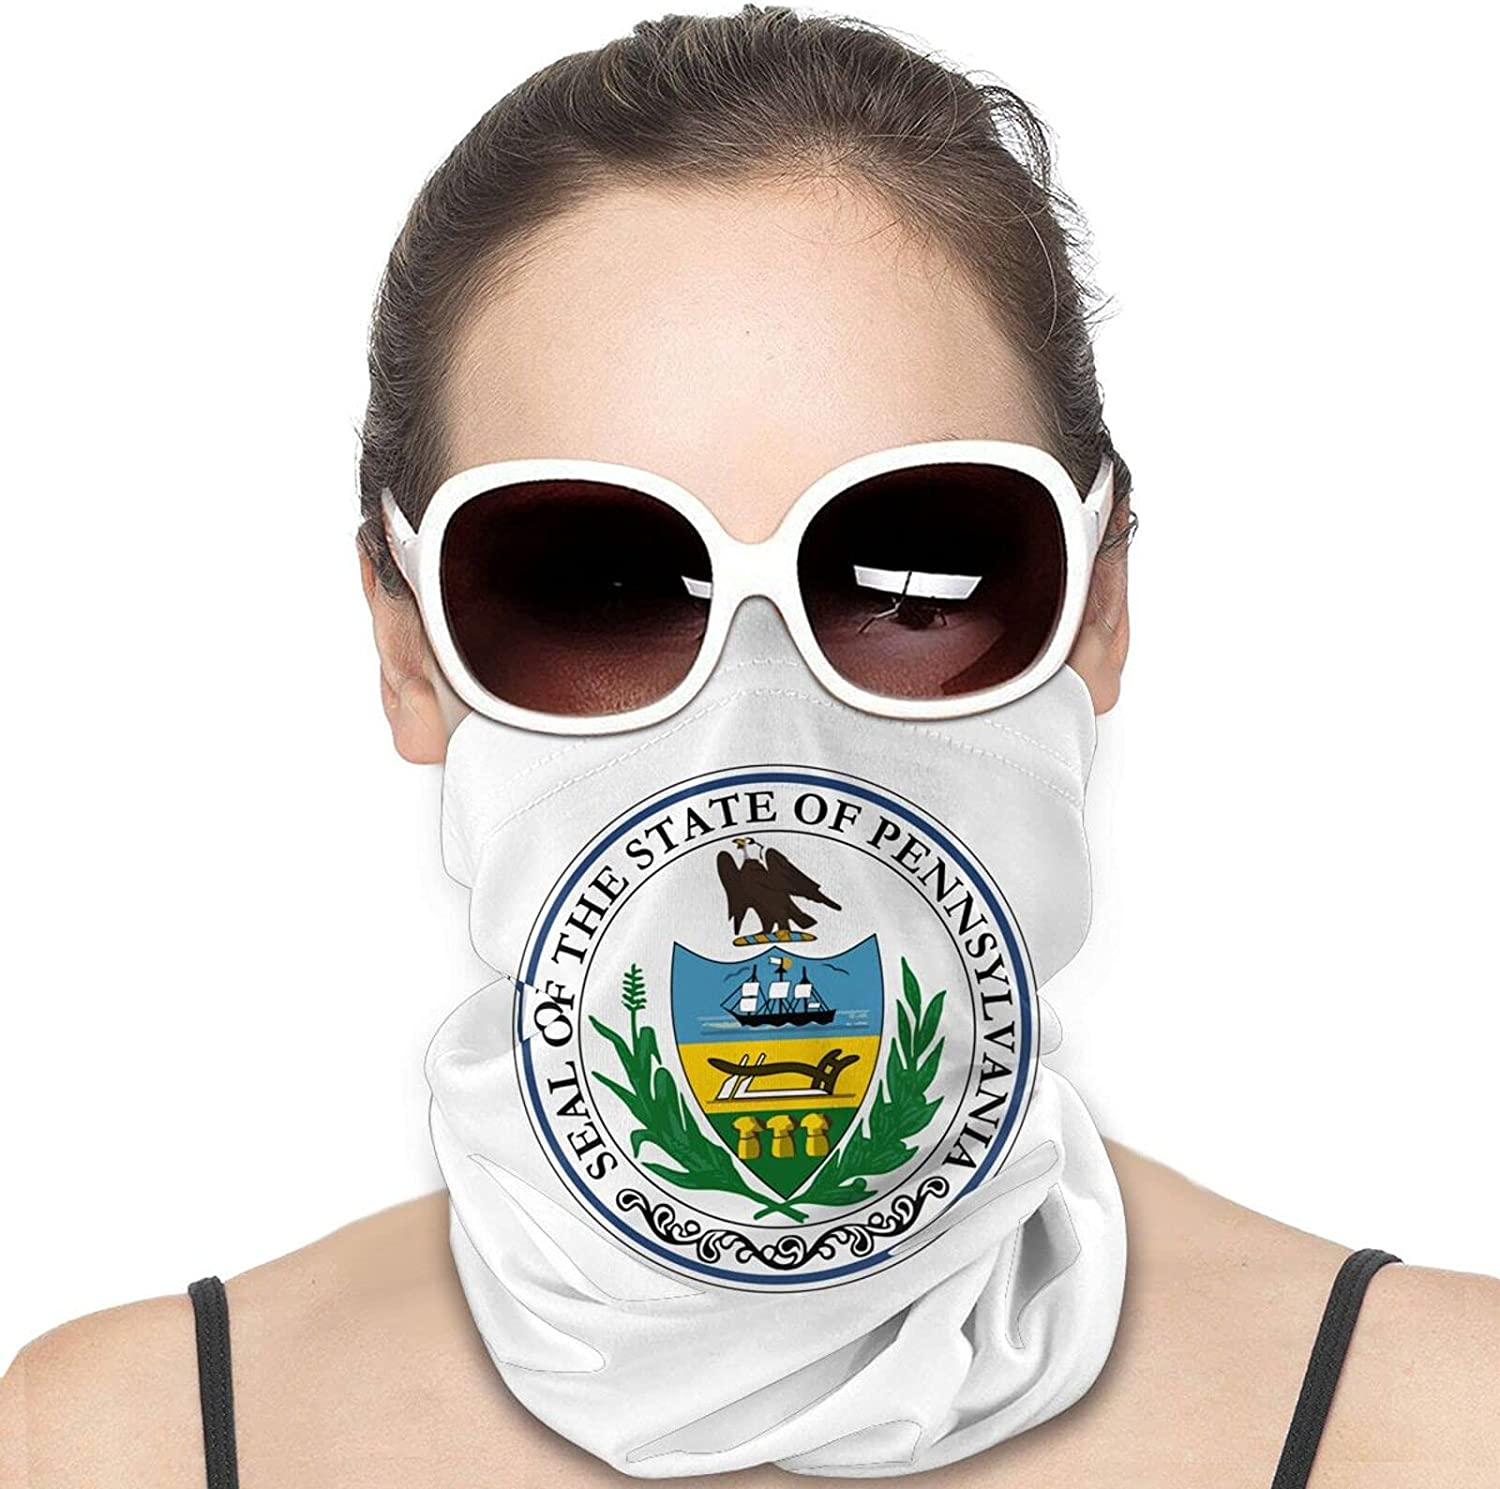 Seal of Pennsylvania Round Neck Gaiter Bandnas Face Cover Uv Protection Prevent bask in Ice Scarf Headbands Perfect for Motorcycle Cycling Running Festival Raves Outdoors